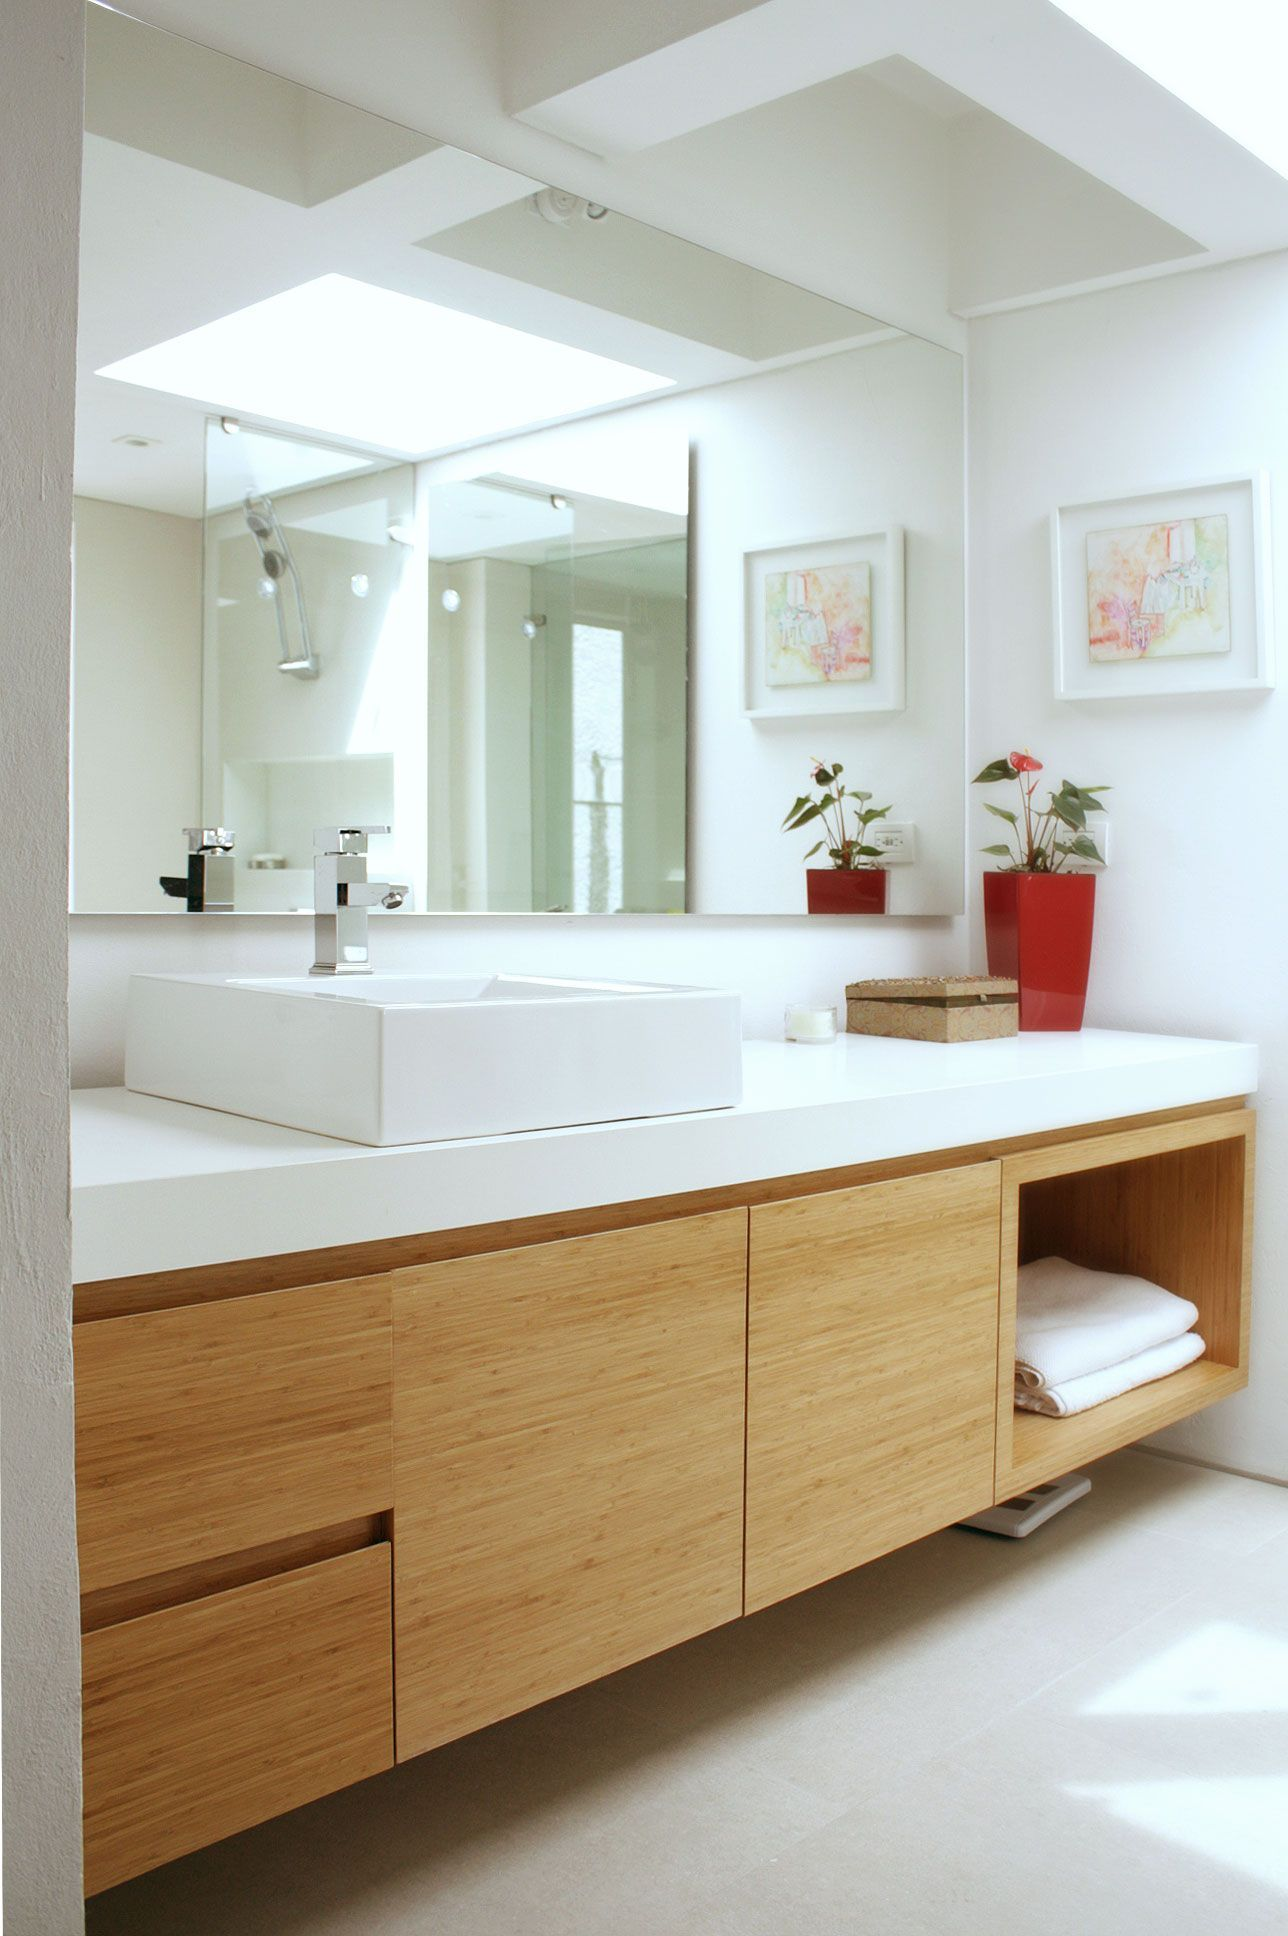 Luxury Bathroom Master Baths Bathtubs is agreed important for your